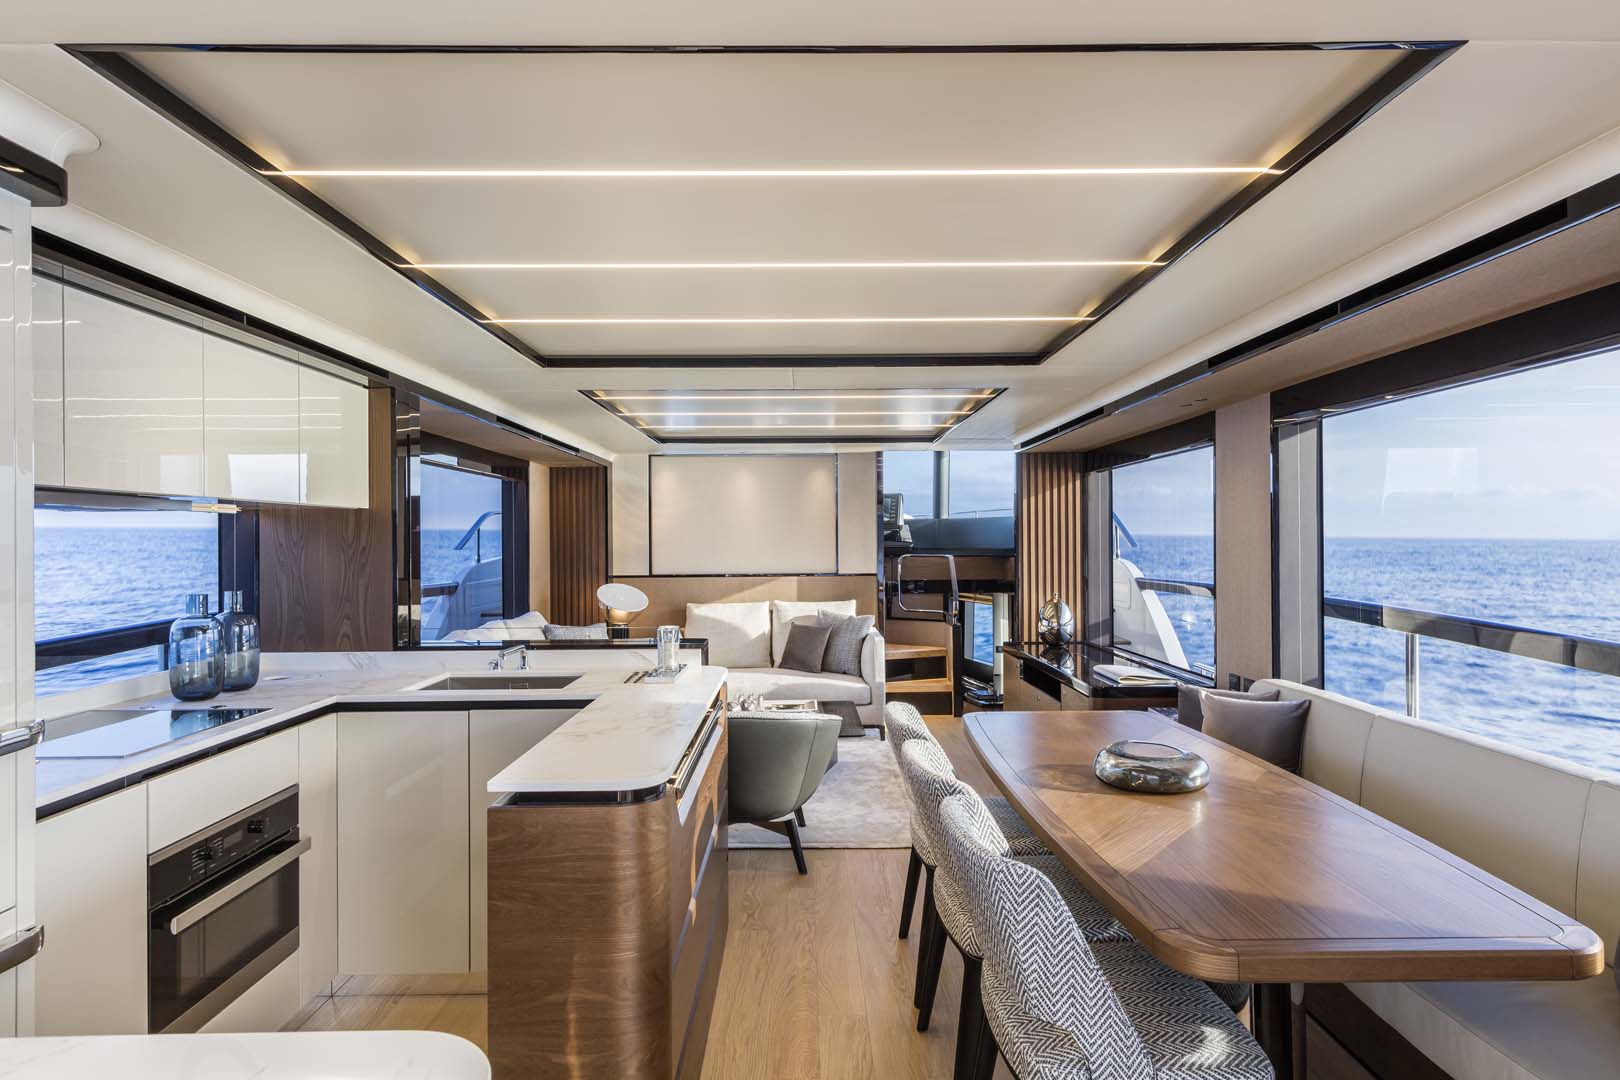 Salon on the absolute navetta 68